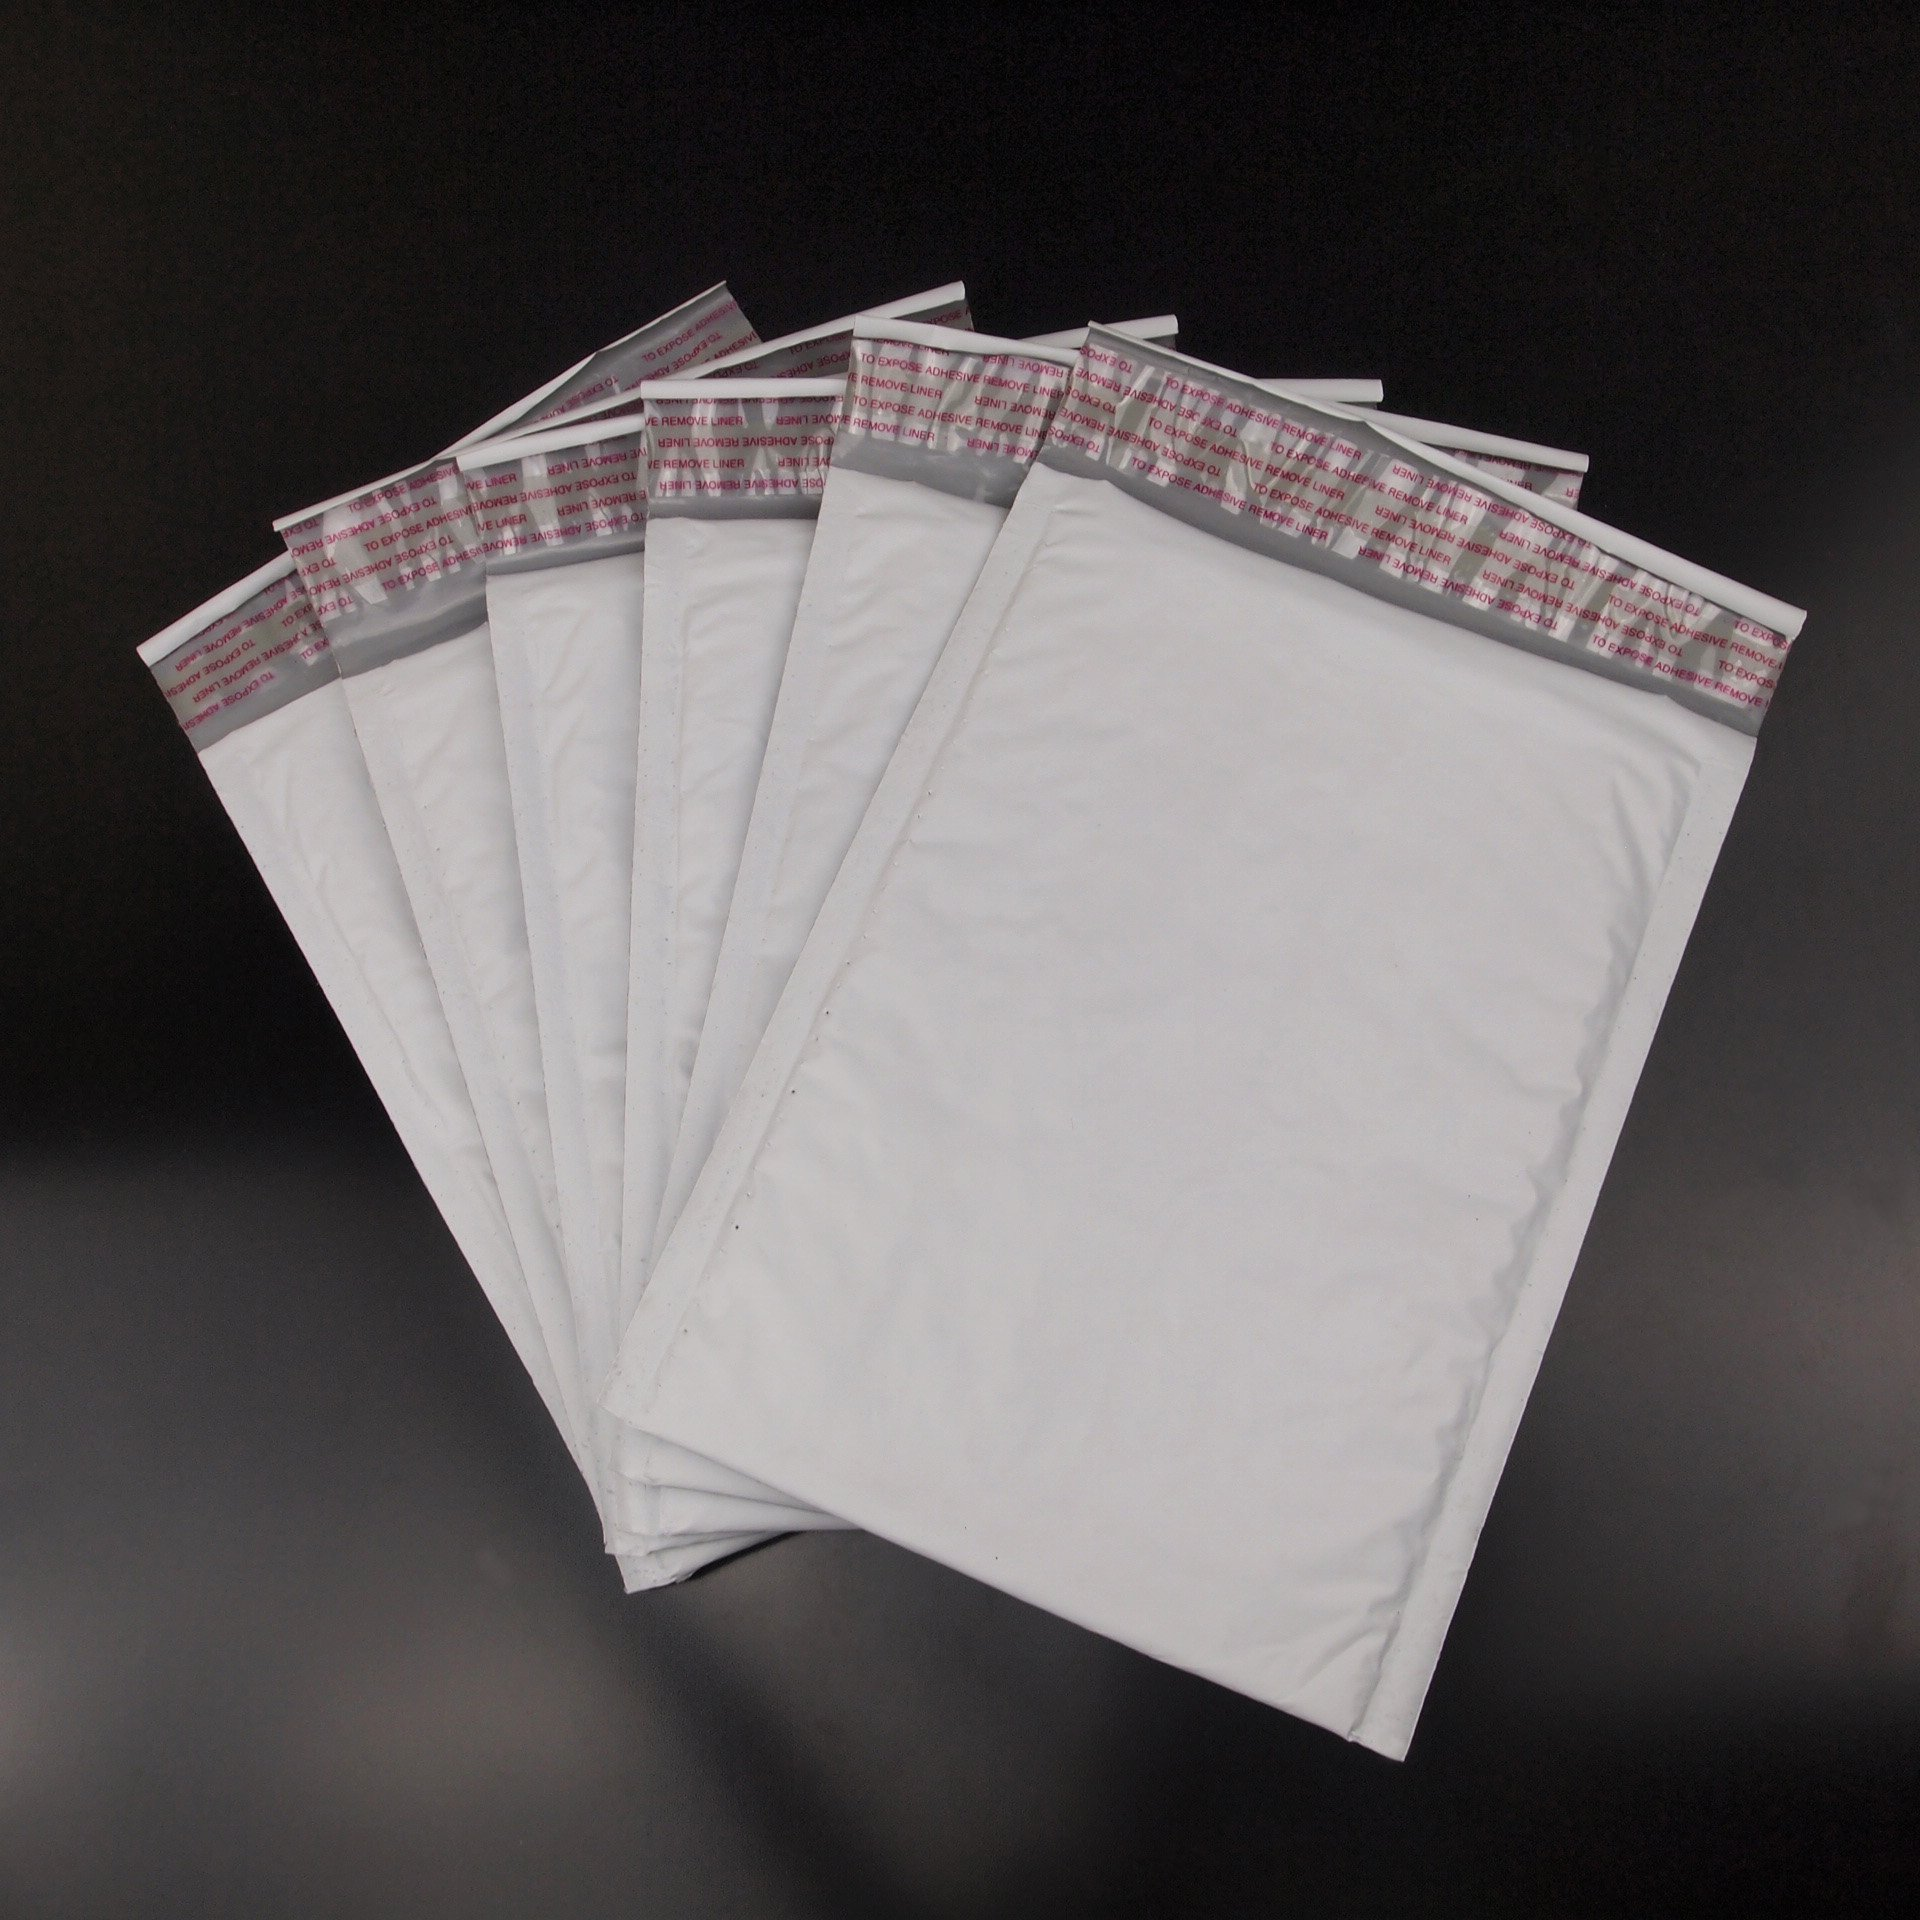 1000 #0 6.5x10 NEW Premium Self Seal Poly Bubble Mailers Envelopes Bags